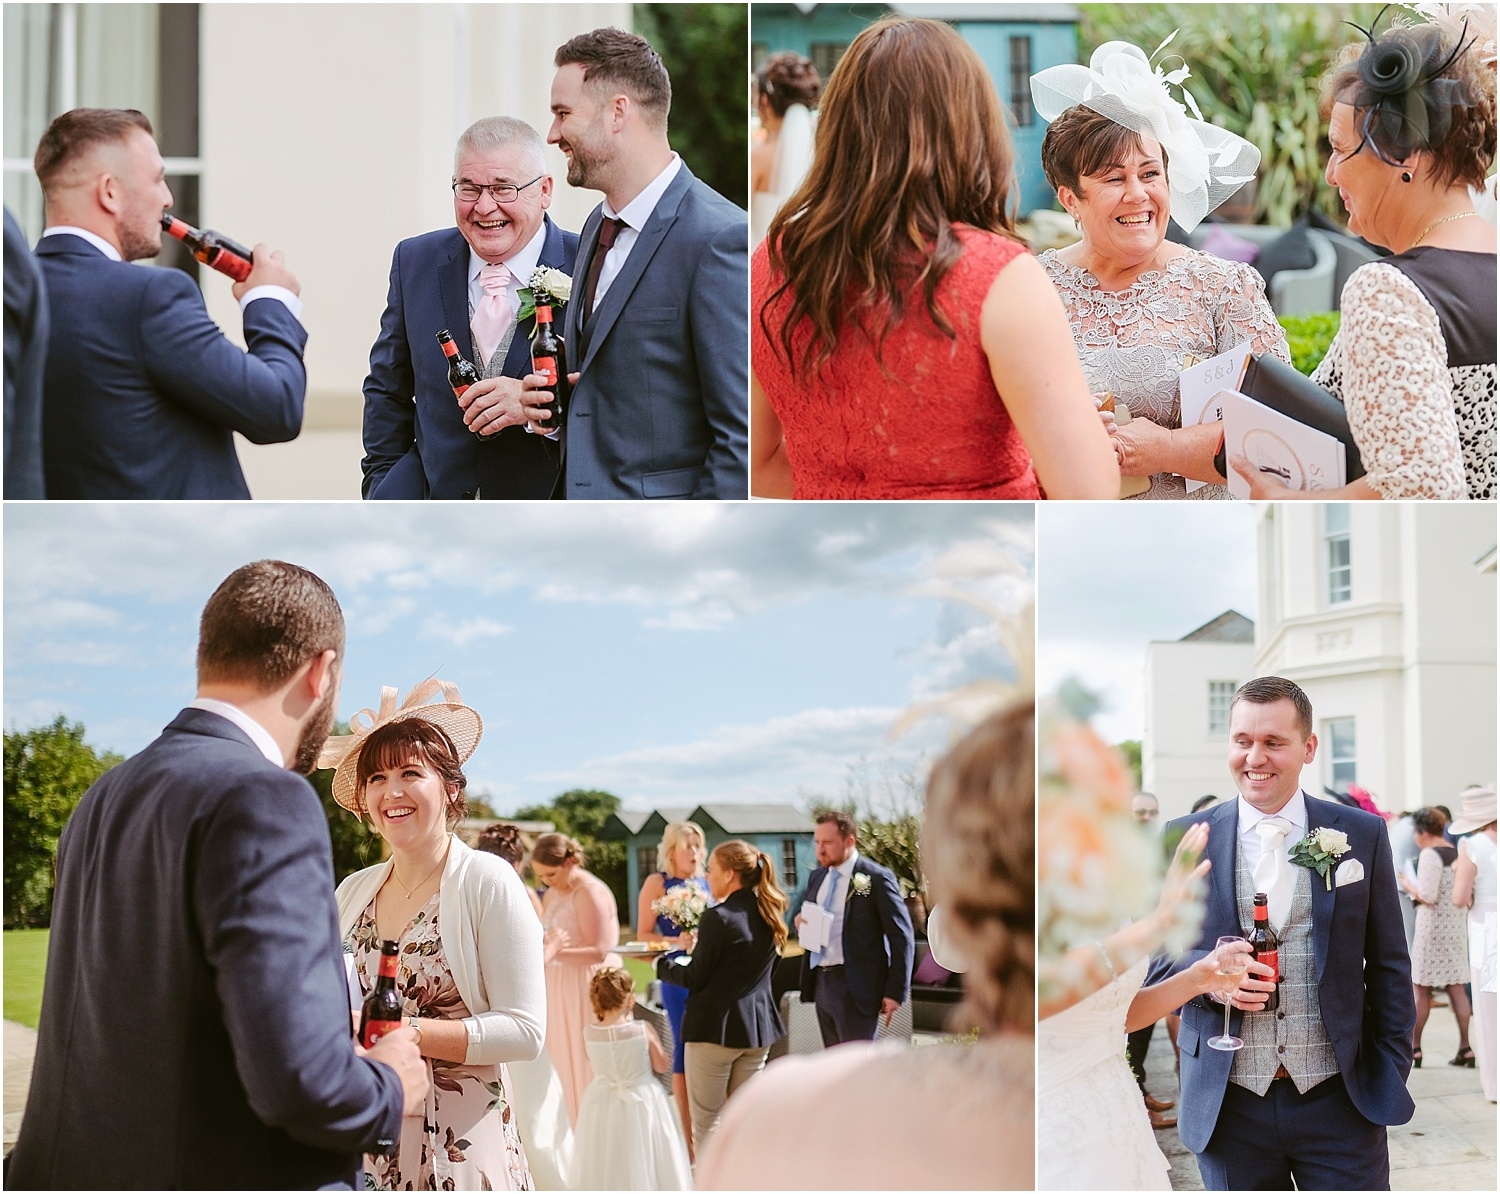 Wedding at Seaham Hall - wedding photography by www.2tonephotography.co.uk 044.jpg